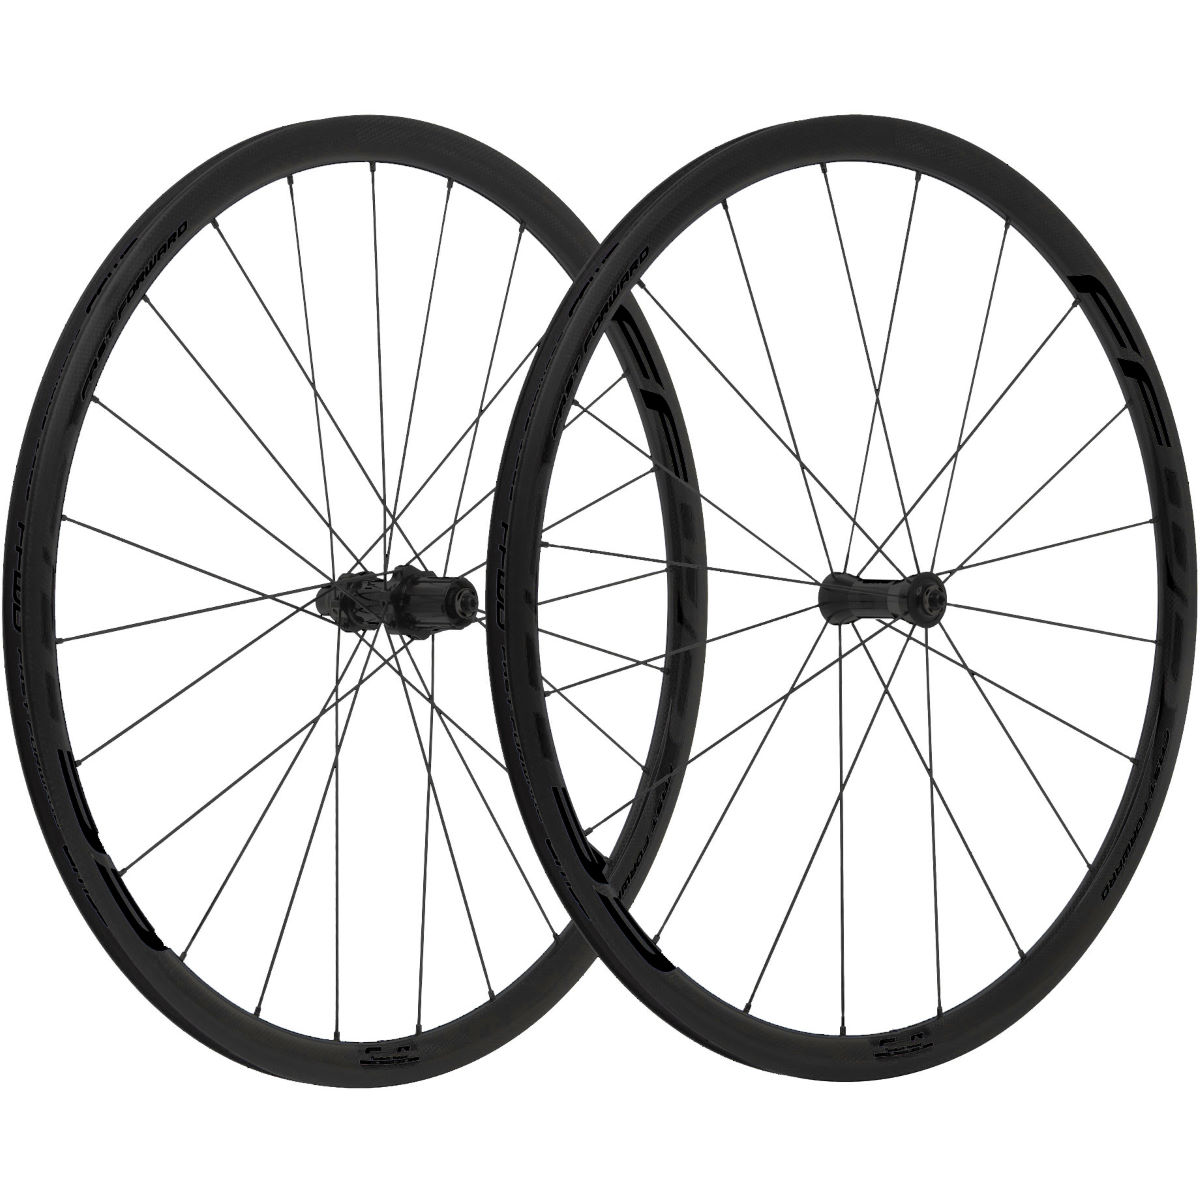 Fast Forward Carbon F3R FCC 30mm SP Wheelset - Ruedas de competición